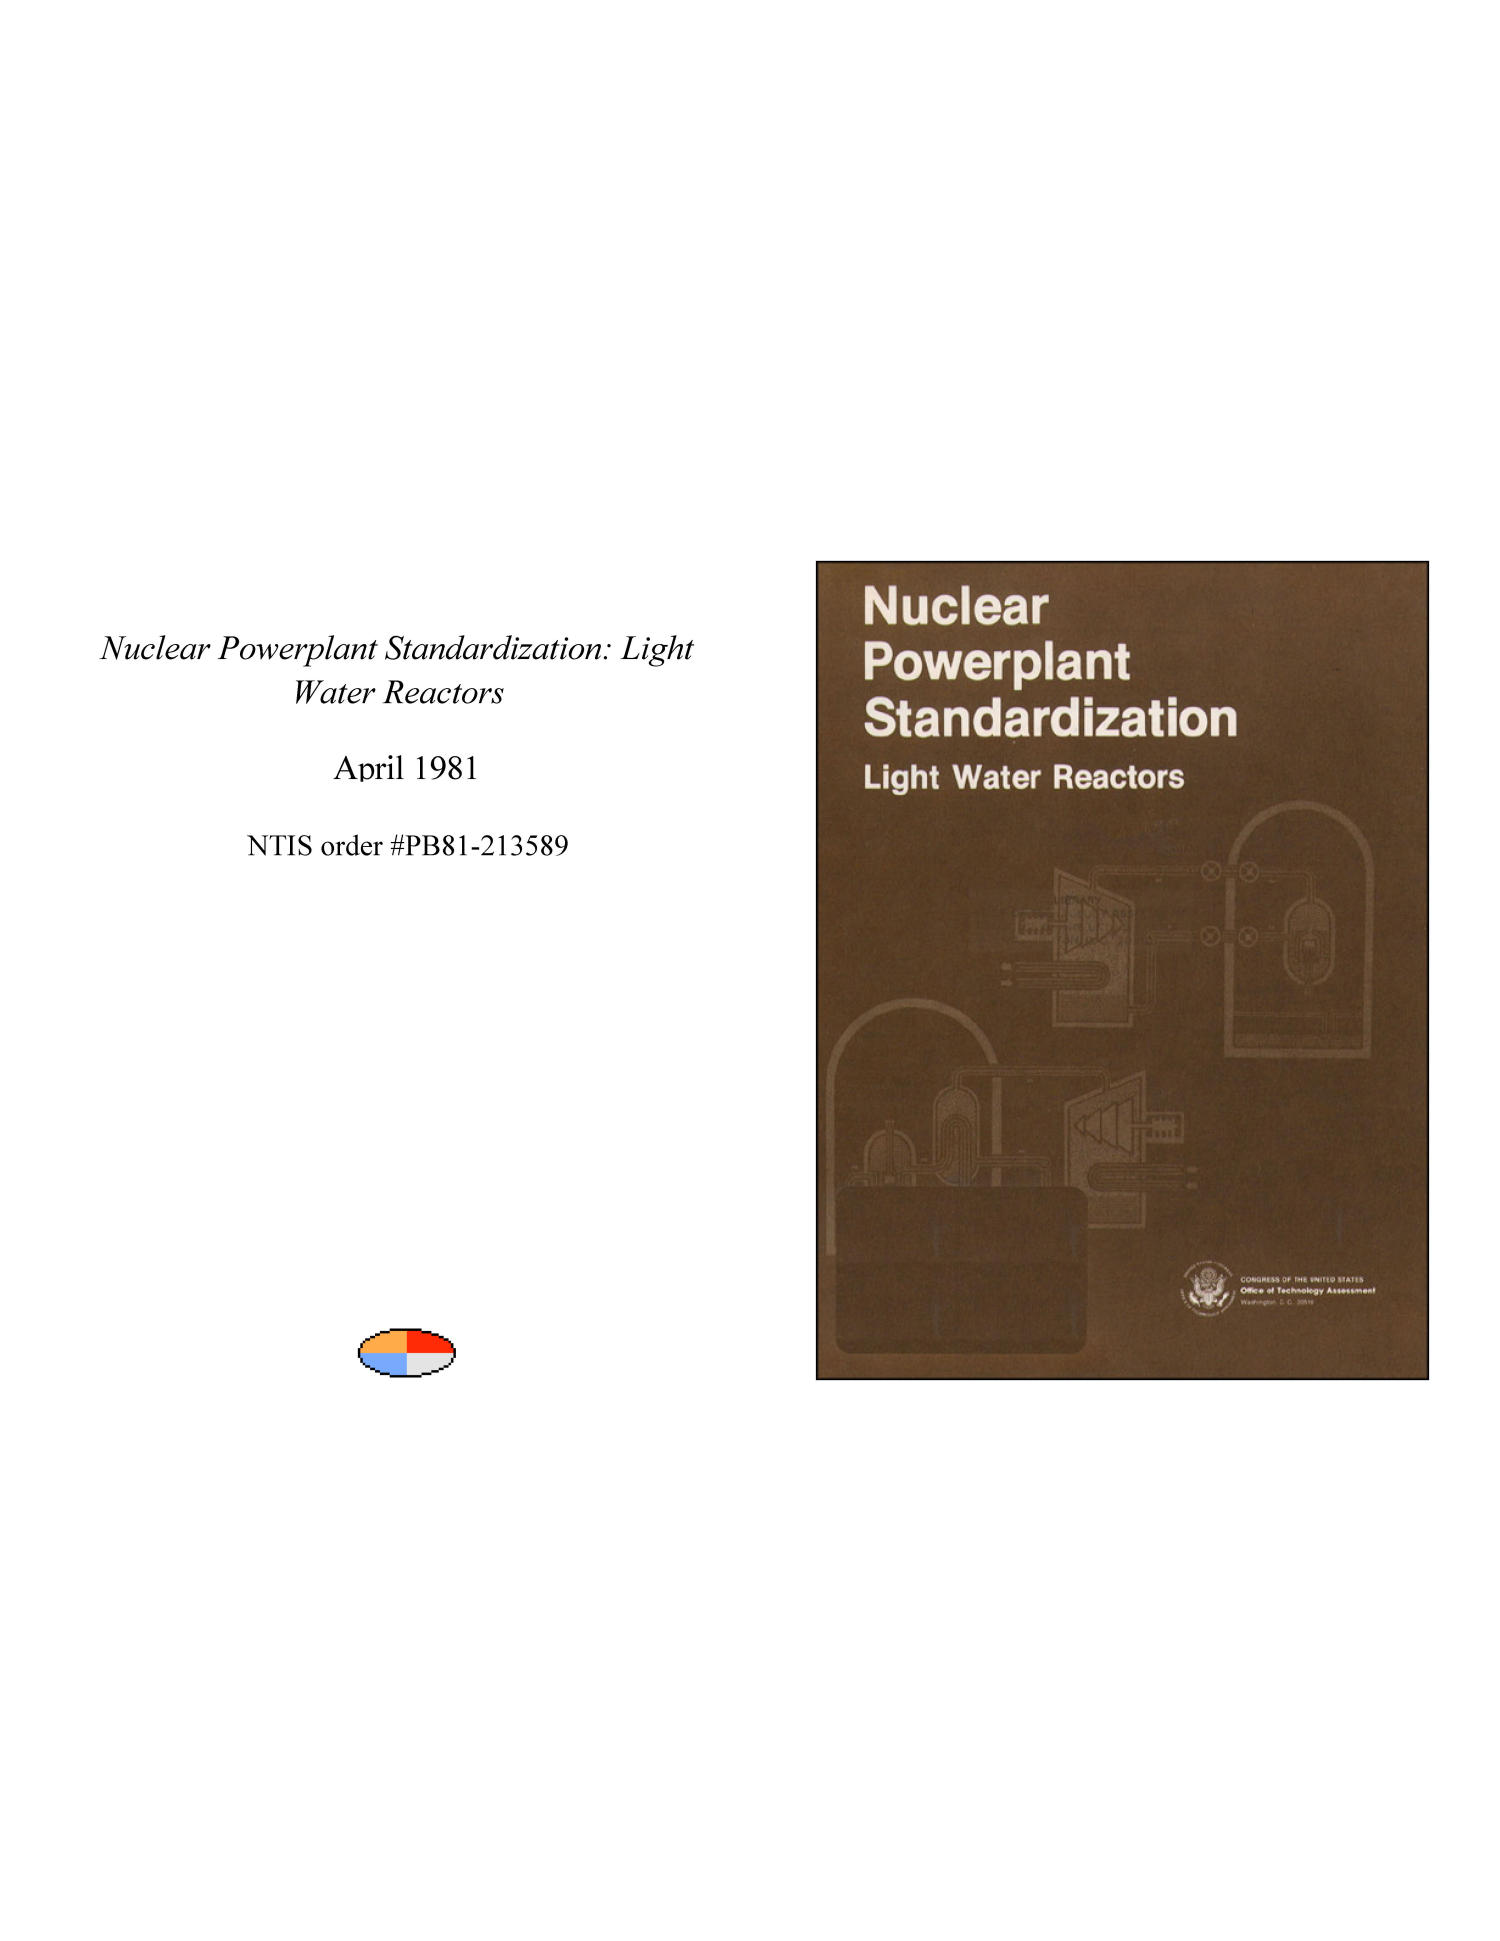 Nuclear Powerplant Standardization Light Water Reactors Digital Power Plant Diagram And Explanation Library